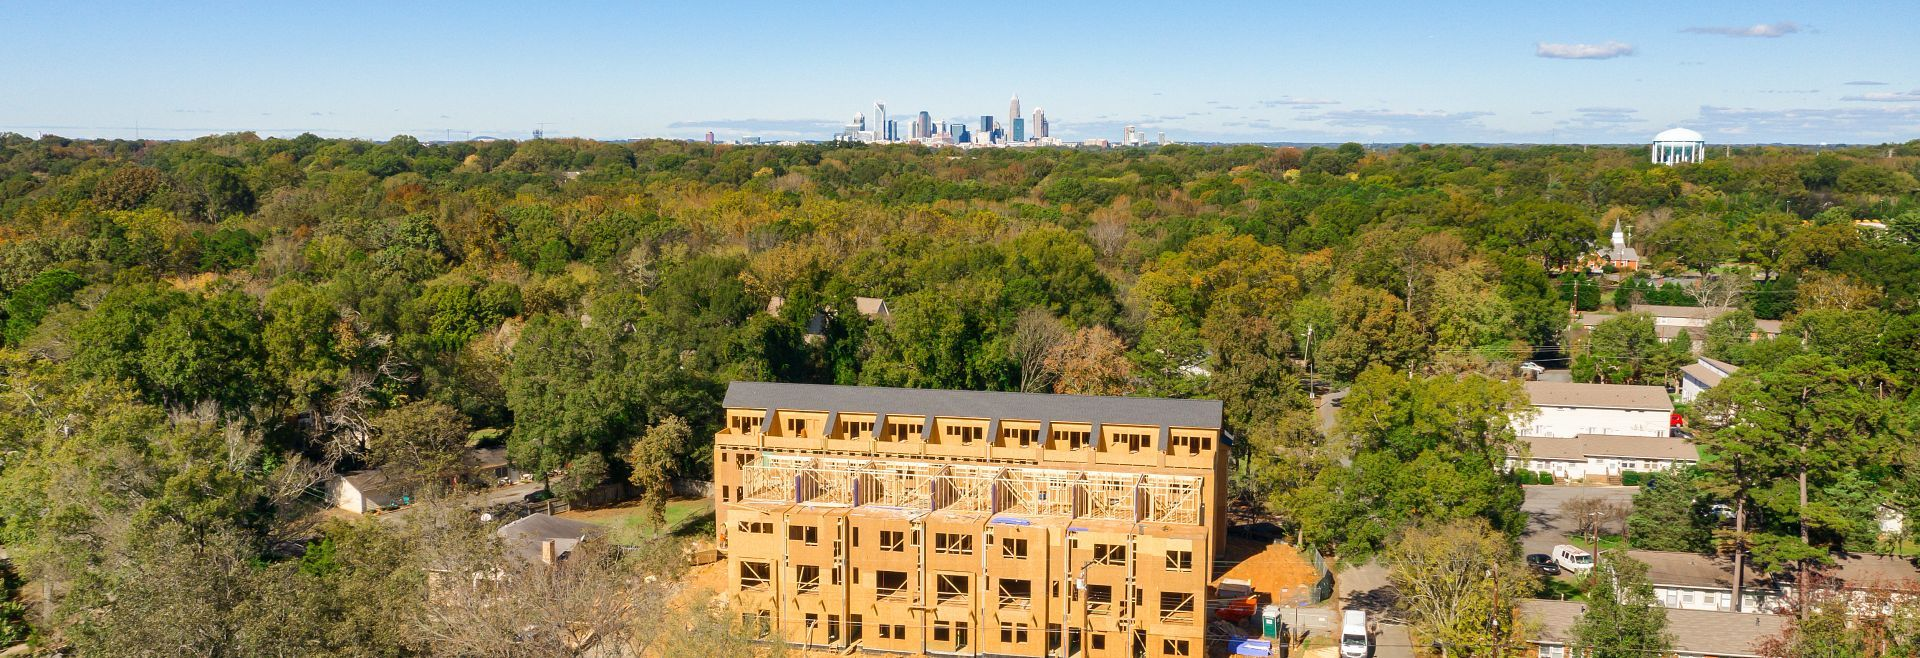 Lucent at Cotswold:6 miles from Uptown Charlotte